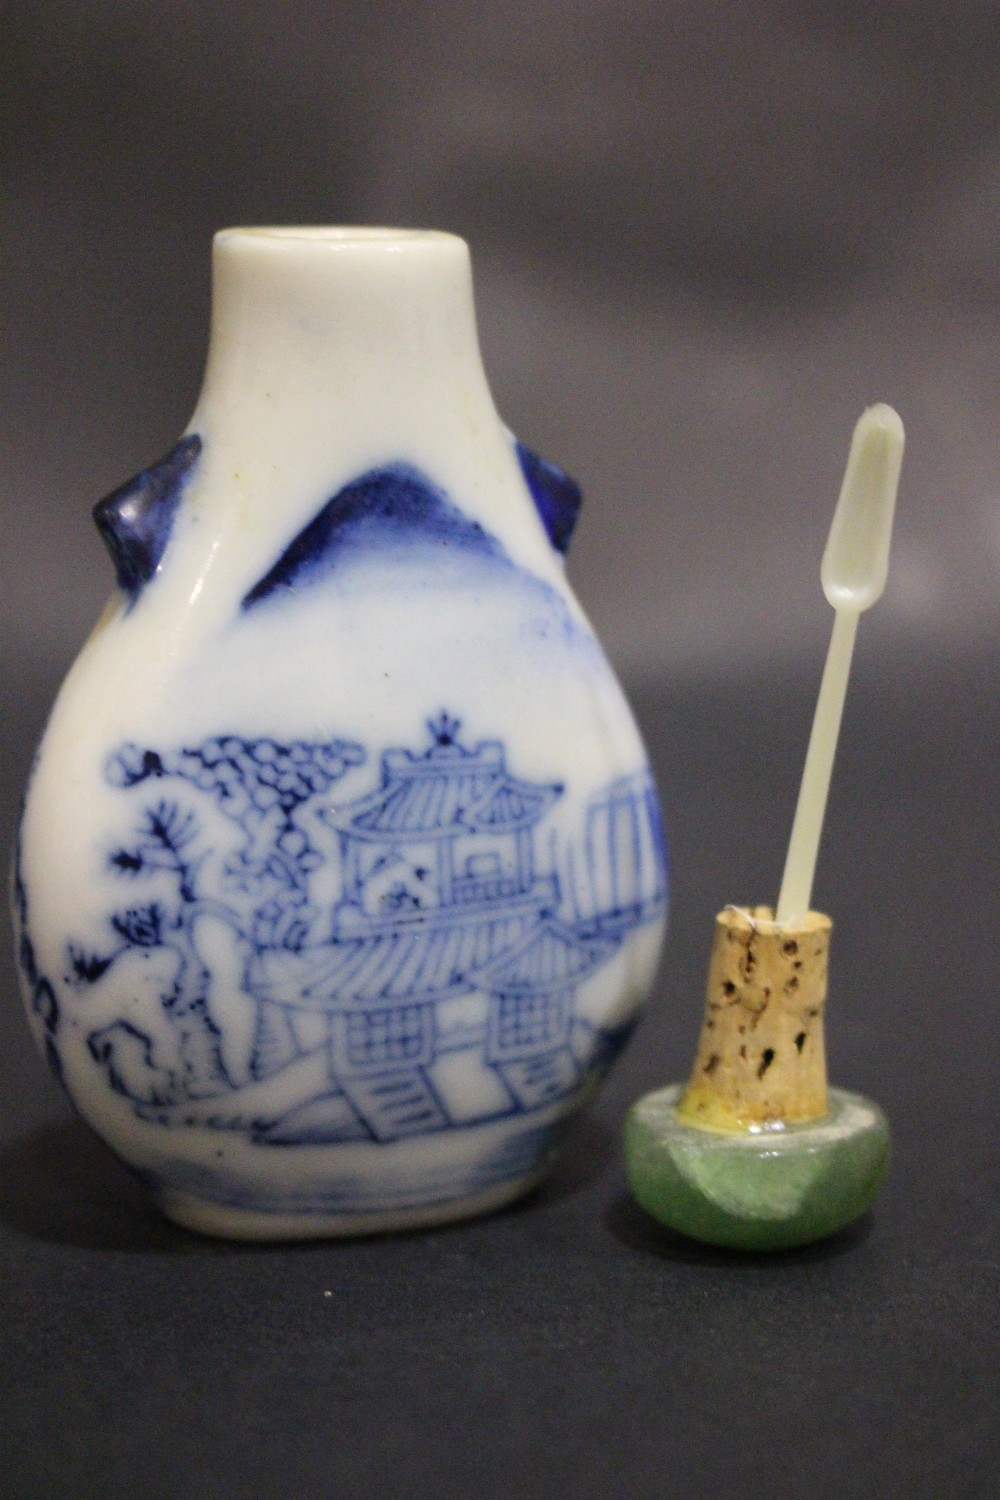 Lot 55 - A BLUE & WHITE CHINESE SNUFF BOTTLE, with a jade stopper and spoon, decorated with landscape and